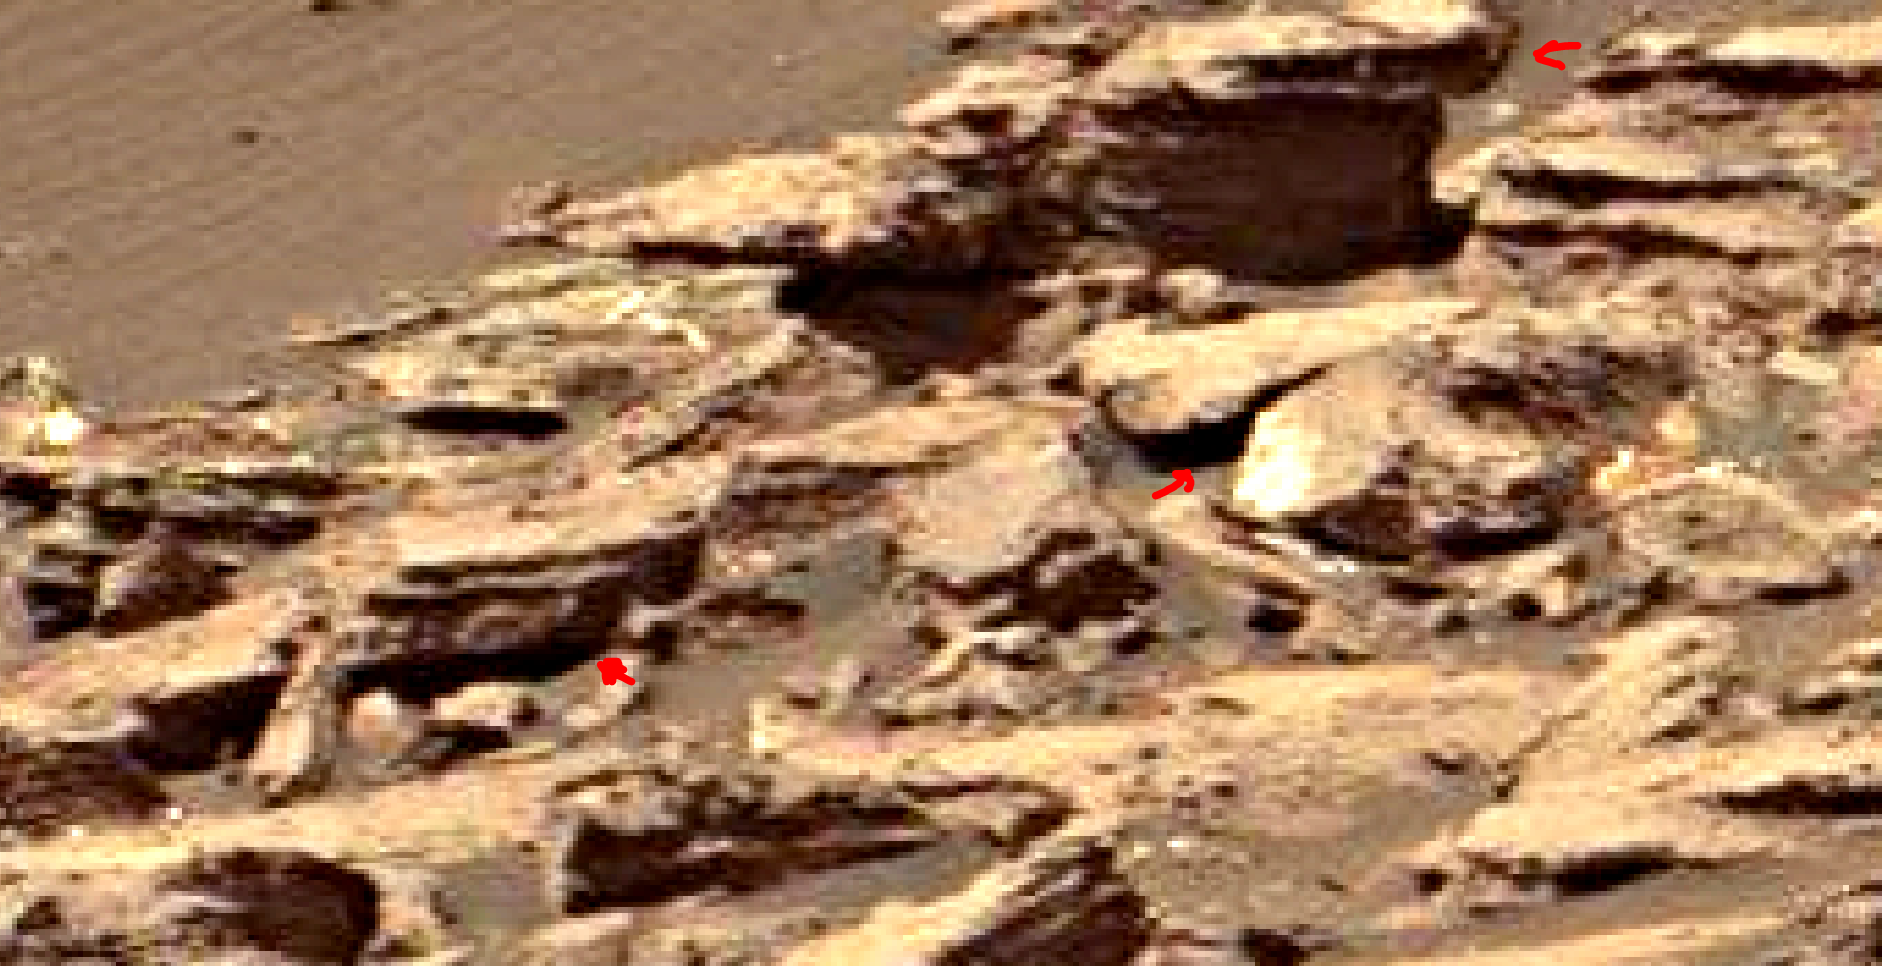 mars-sol-1493-anomaly-artifacts-4a-was-life-on-mars